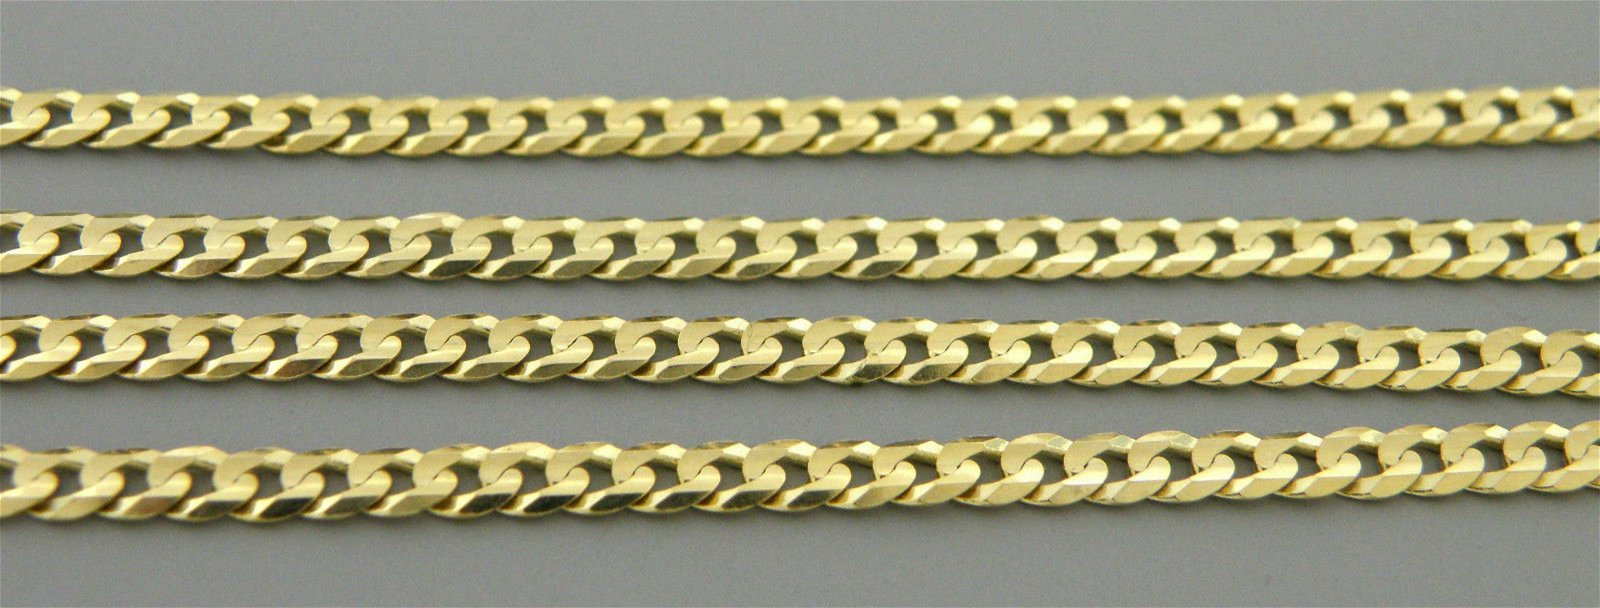 """14K YELLOW GOLD CHAIN, 18"""" UNISEX CURB NECKLACE 3mm"""